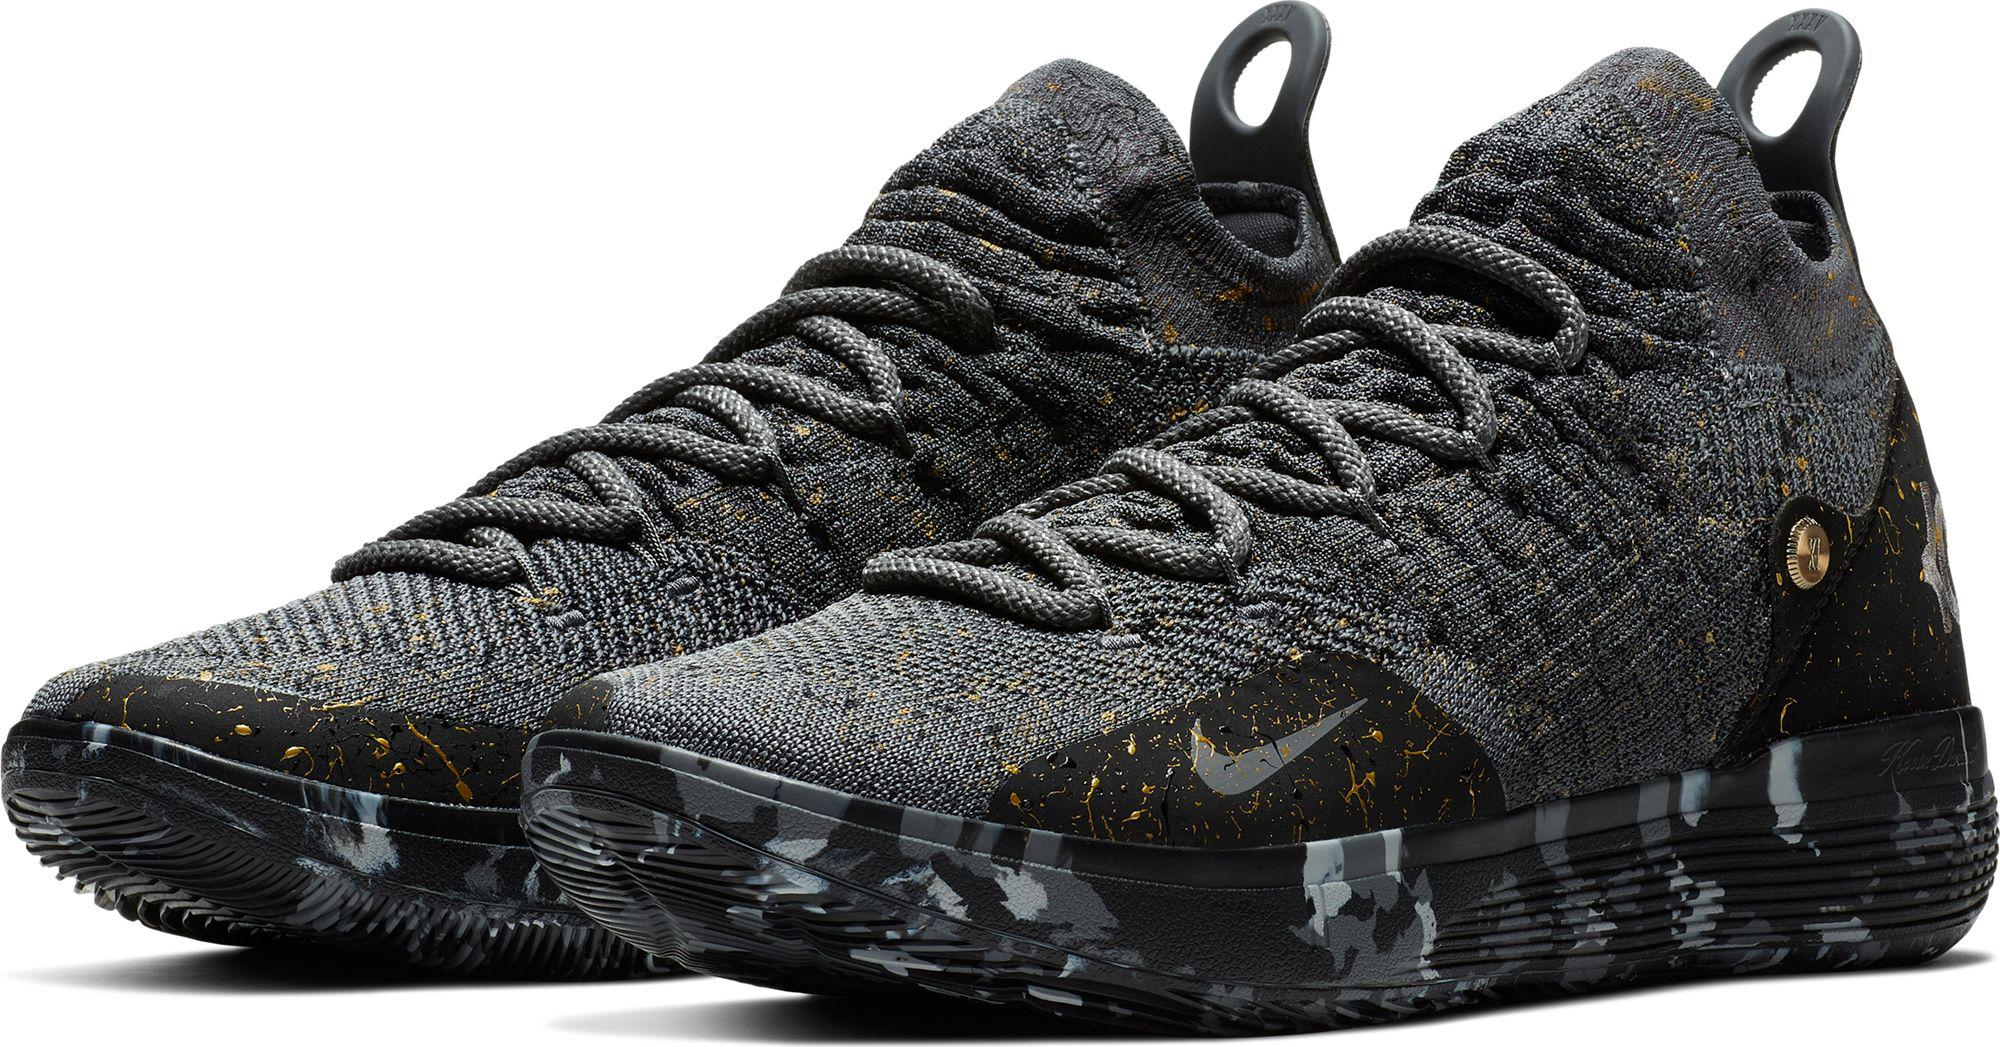 dicks kd 11 Kevin Durant shoes on sale